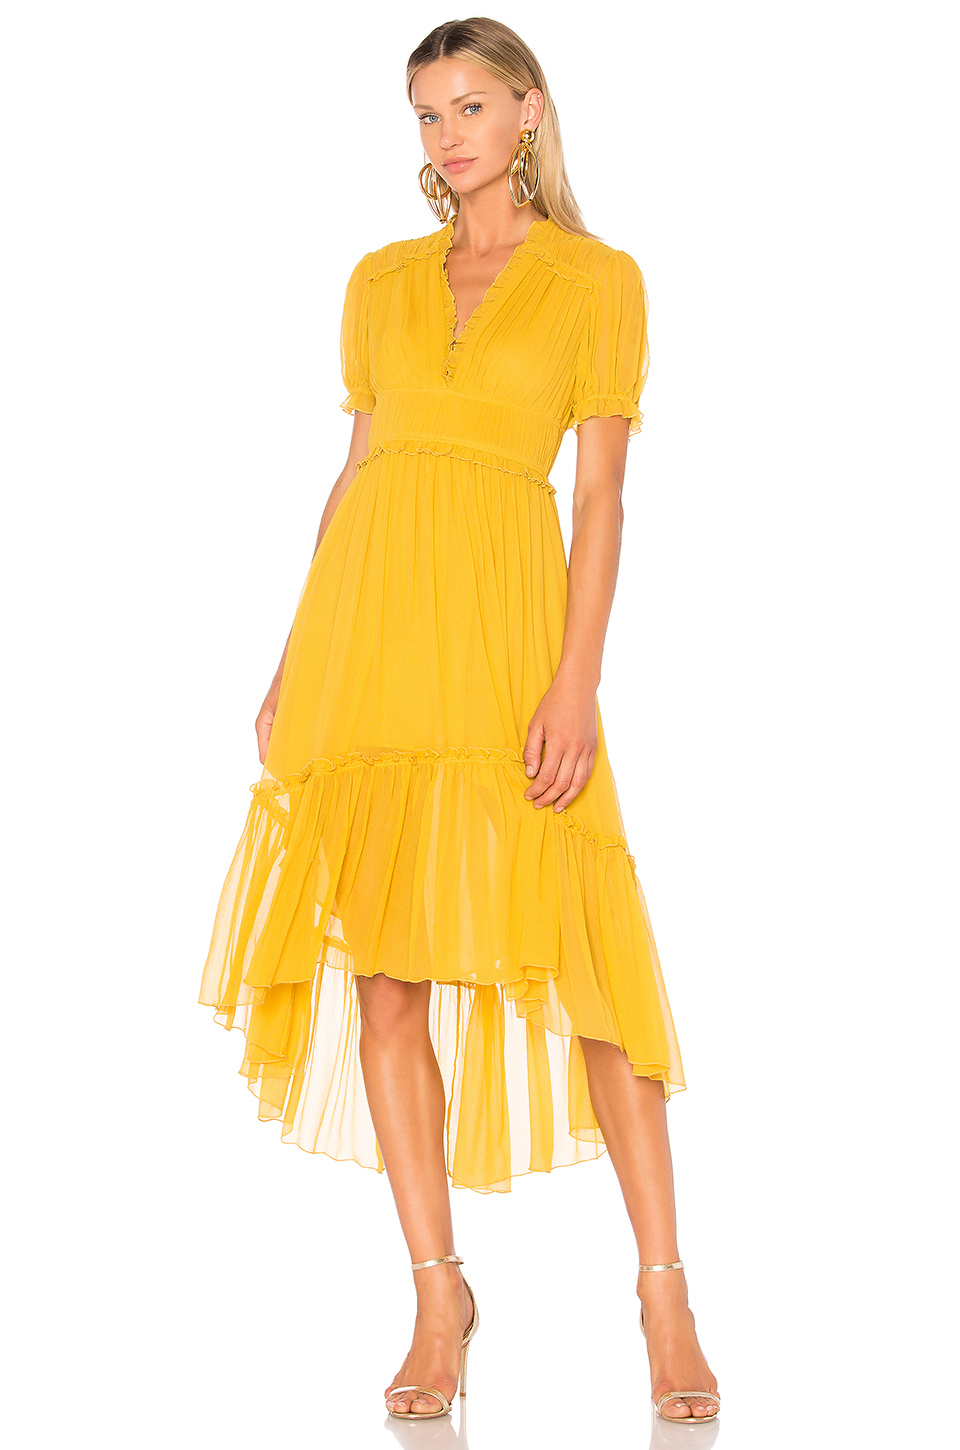 Ulla Johnson Sonja Dress, $575 from Revolve, Photo Cred Revolve